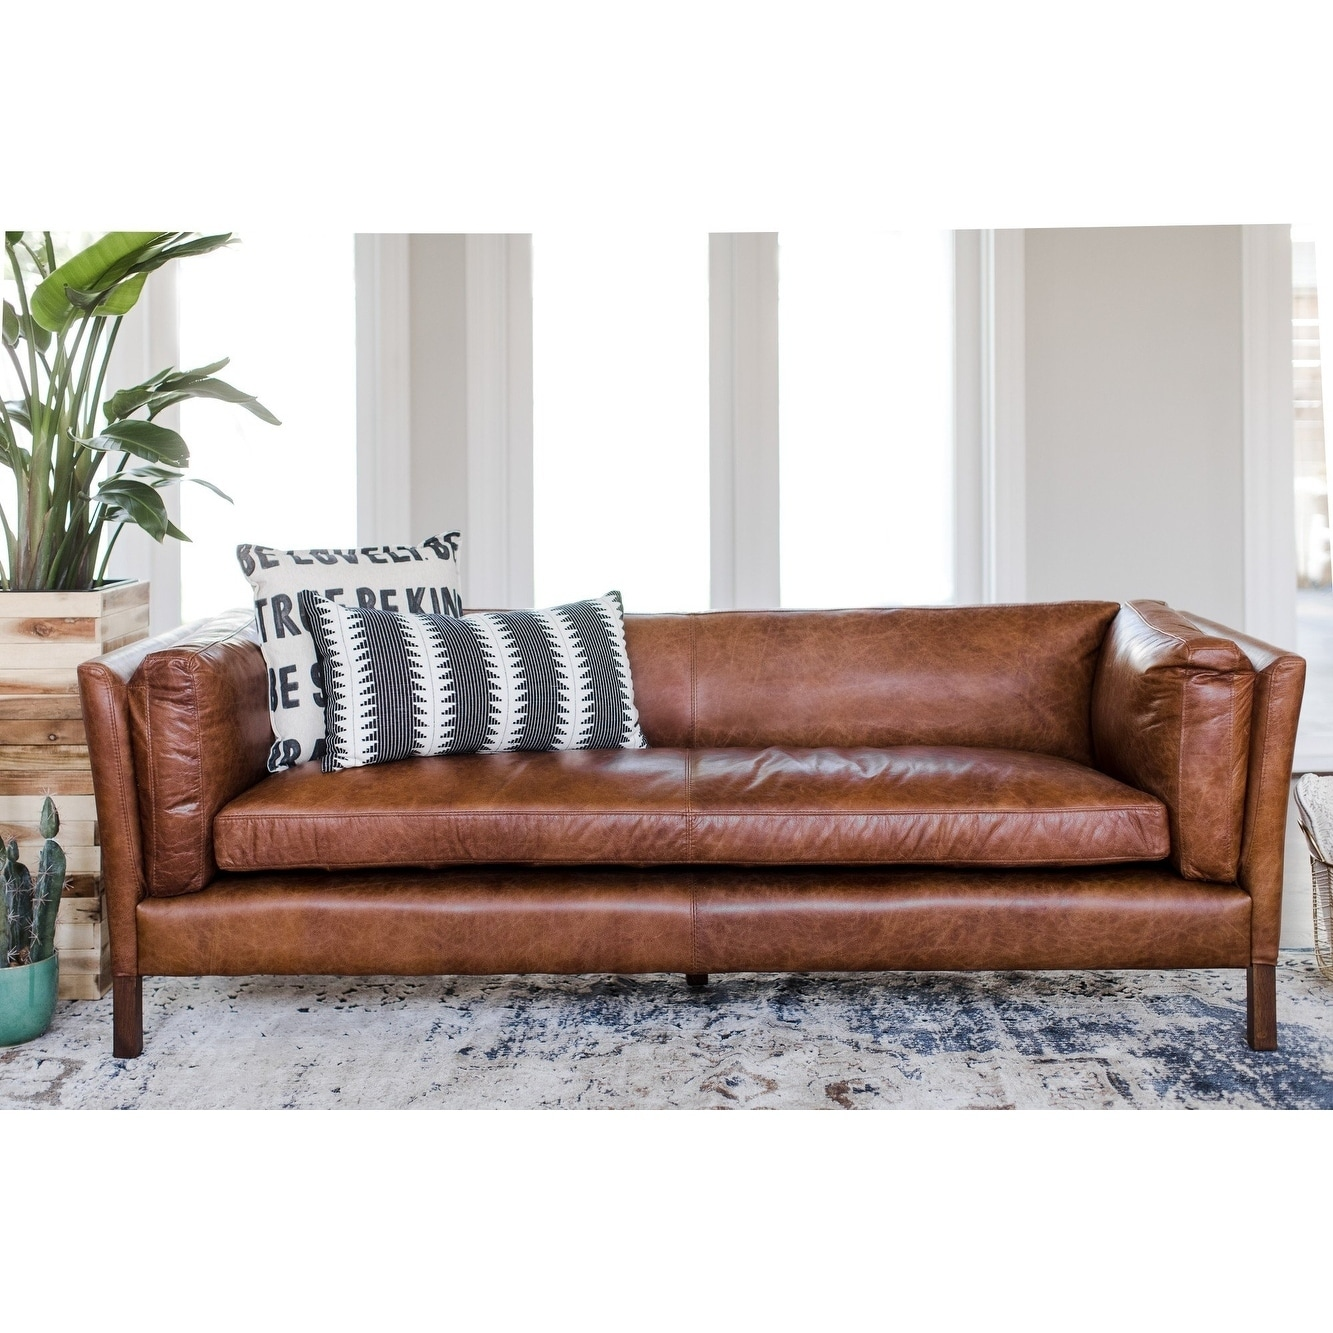 Miraculous Modern Leather Sofa Mid Century Modern Couch Top Grain Brazilian Leather Cognac Brown Pabps2019 Chair Design Images Pabps2019Com